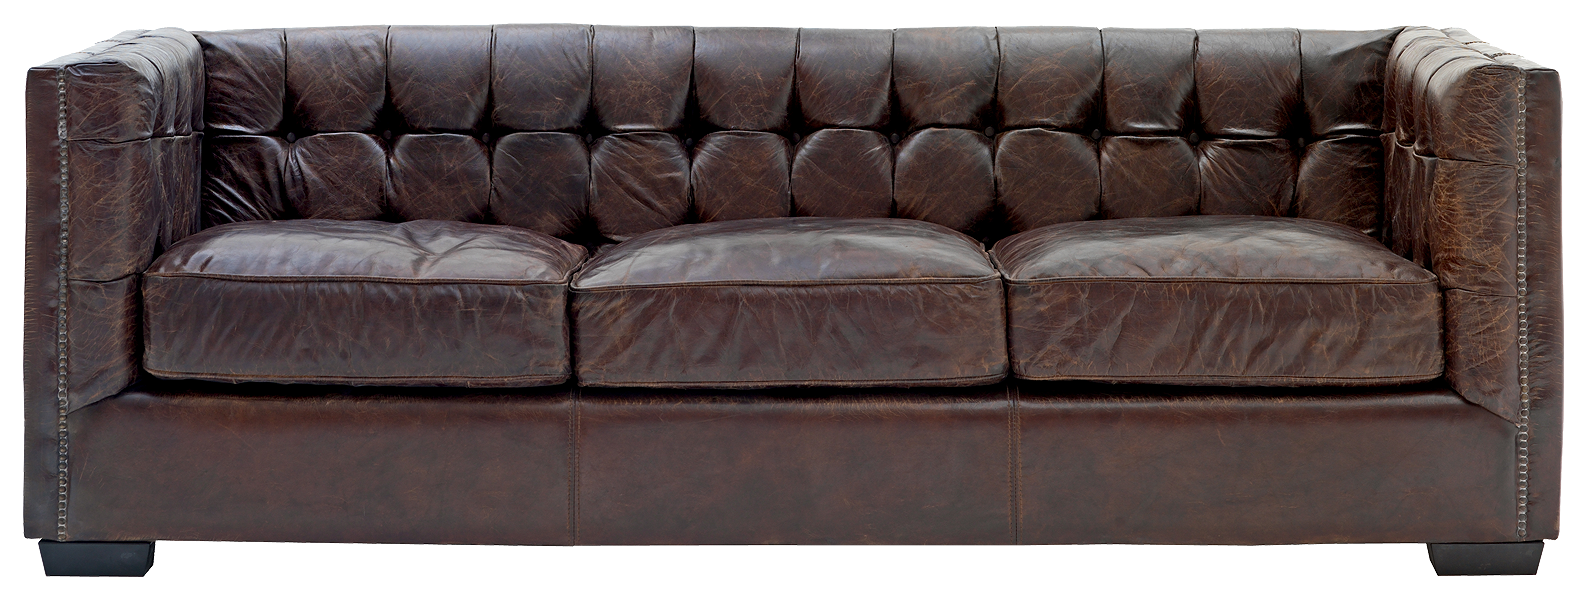 Couch png. Sofa images free download